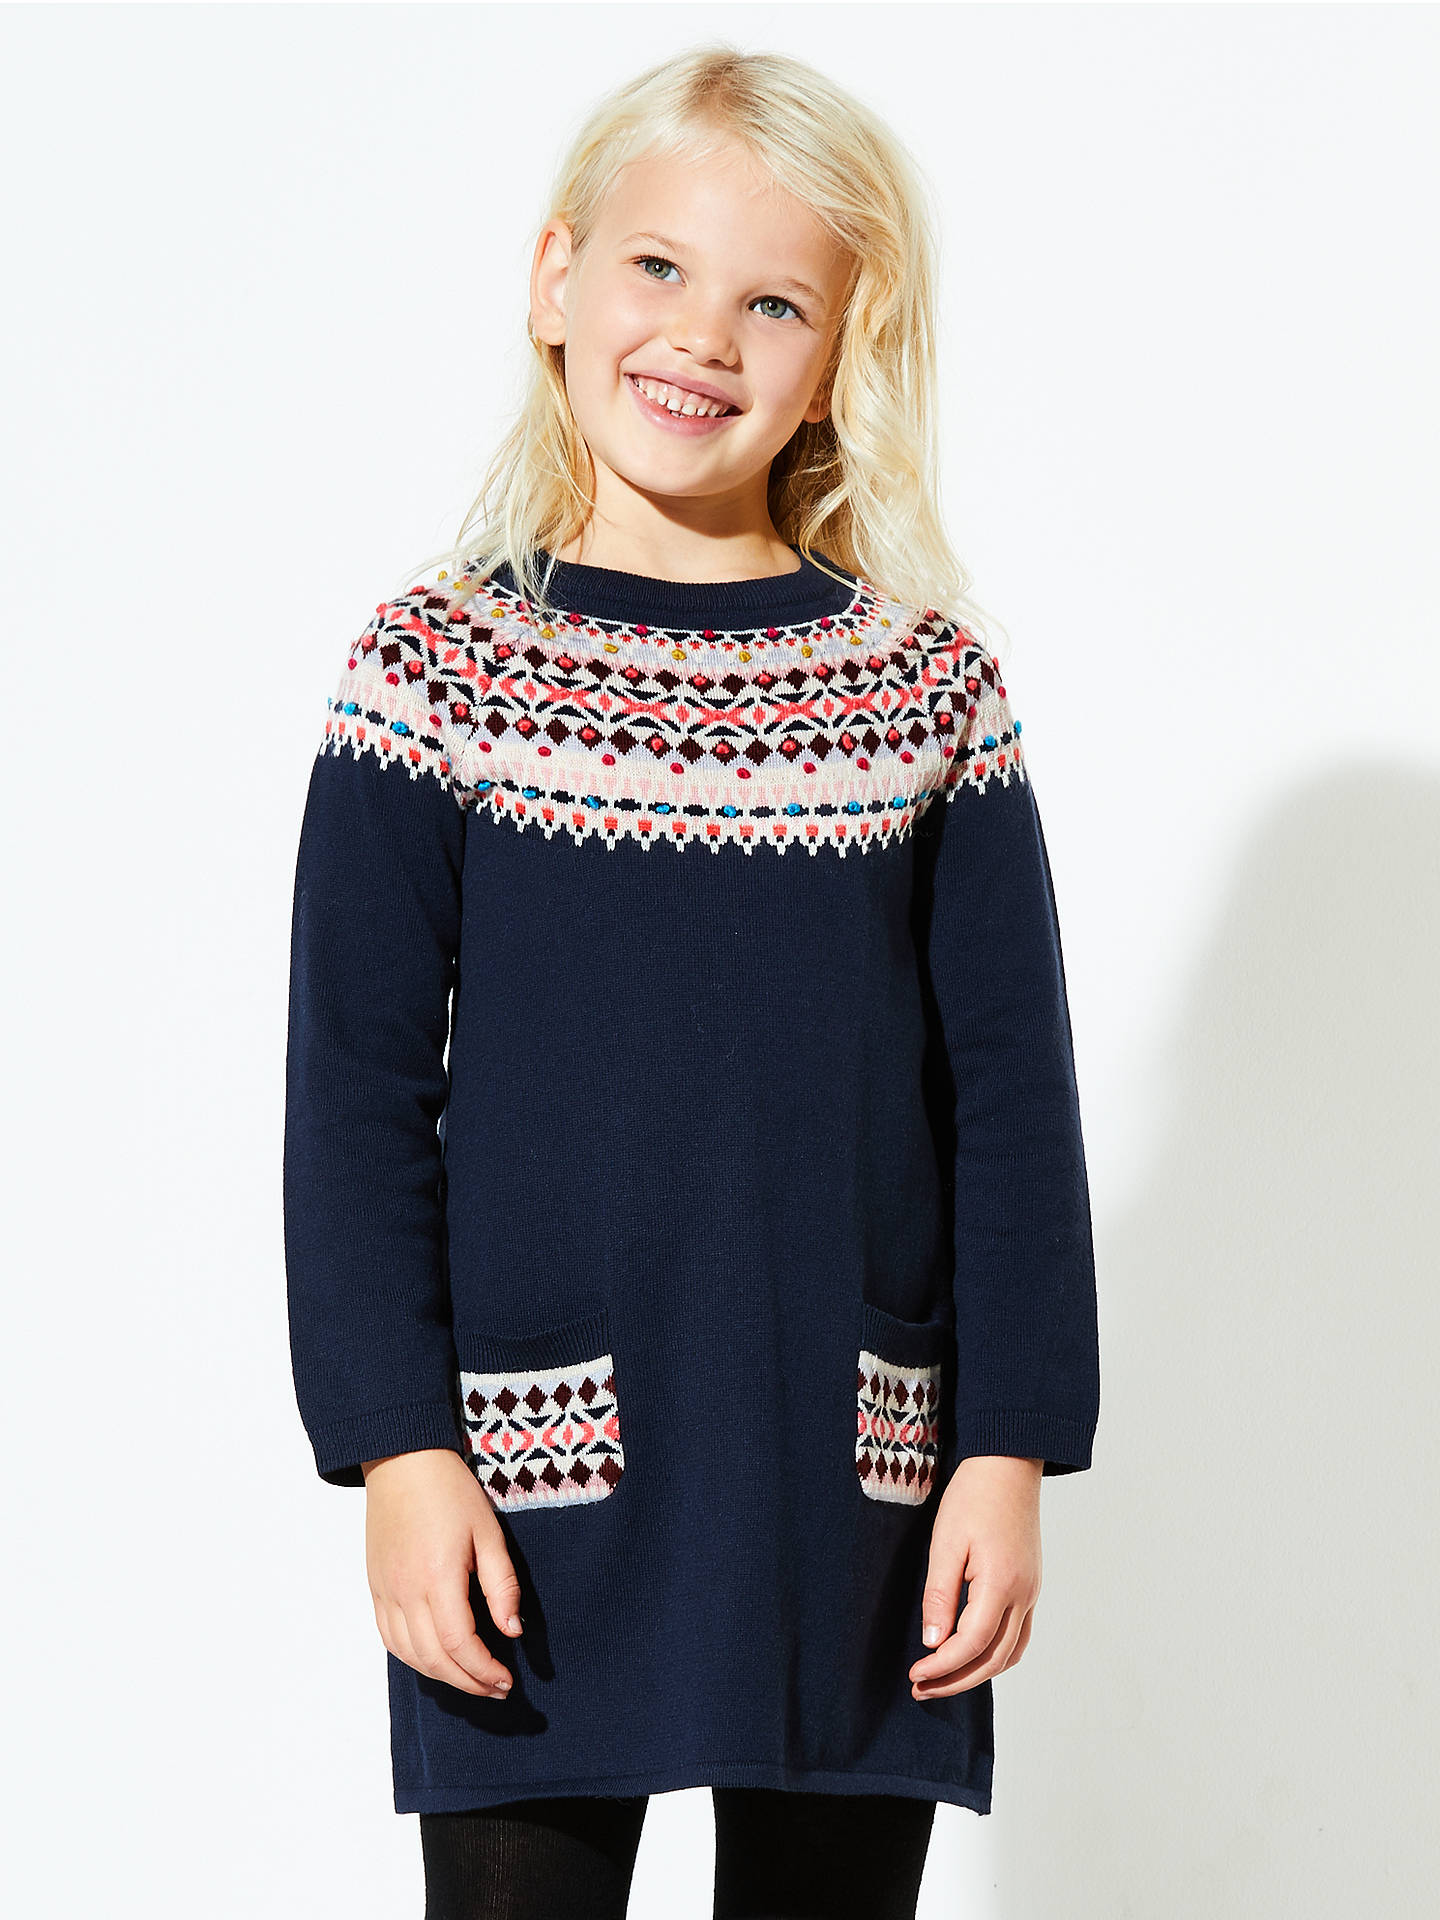 Release disinfectant cabbage  John Lewis Girls' Fair Isle Knitted Dress, Navy at John Lewis & Partners